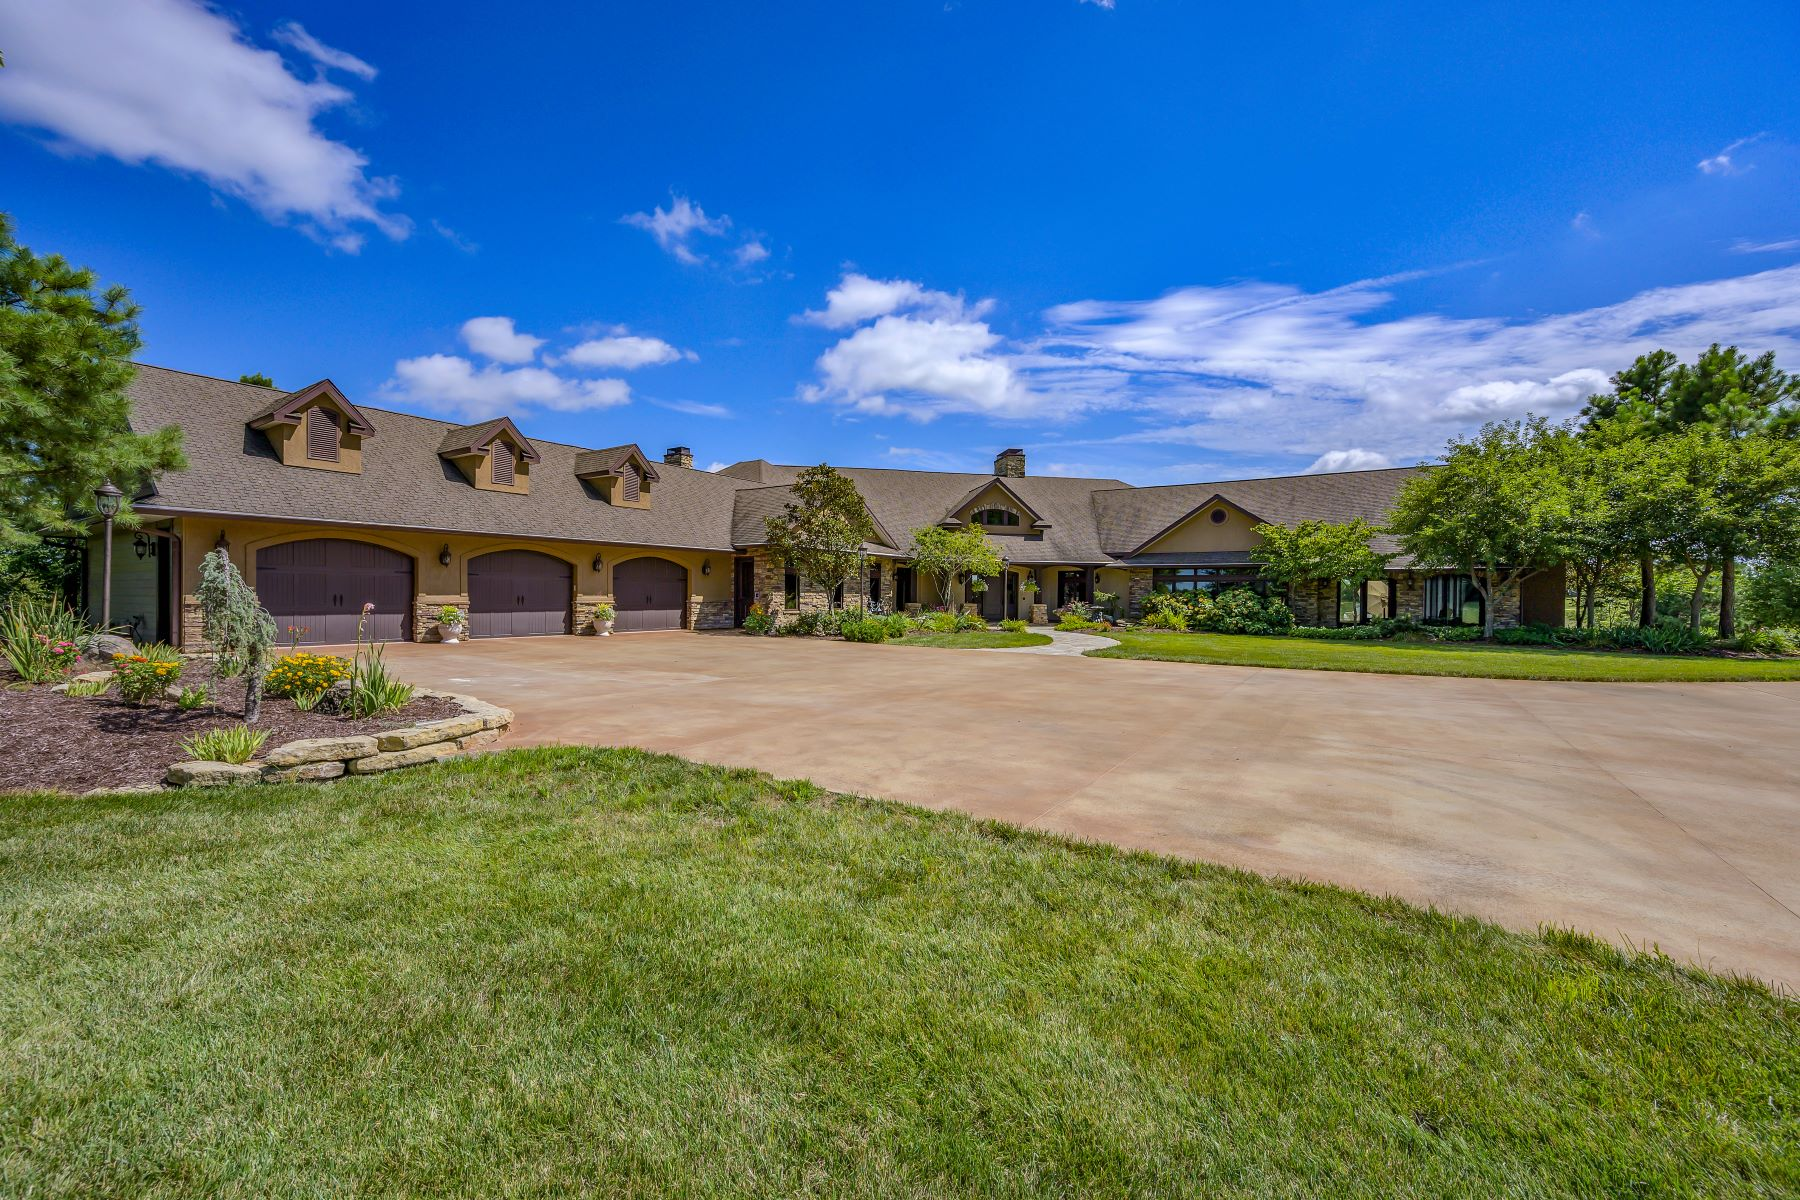 Single Family Homes for Sale at Country Shores Nature Estate 17715 Barth Avenue Salisbury, Missouri 65281 United States